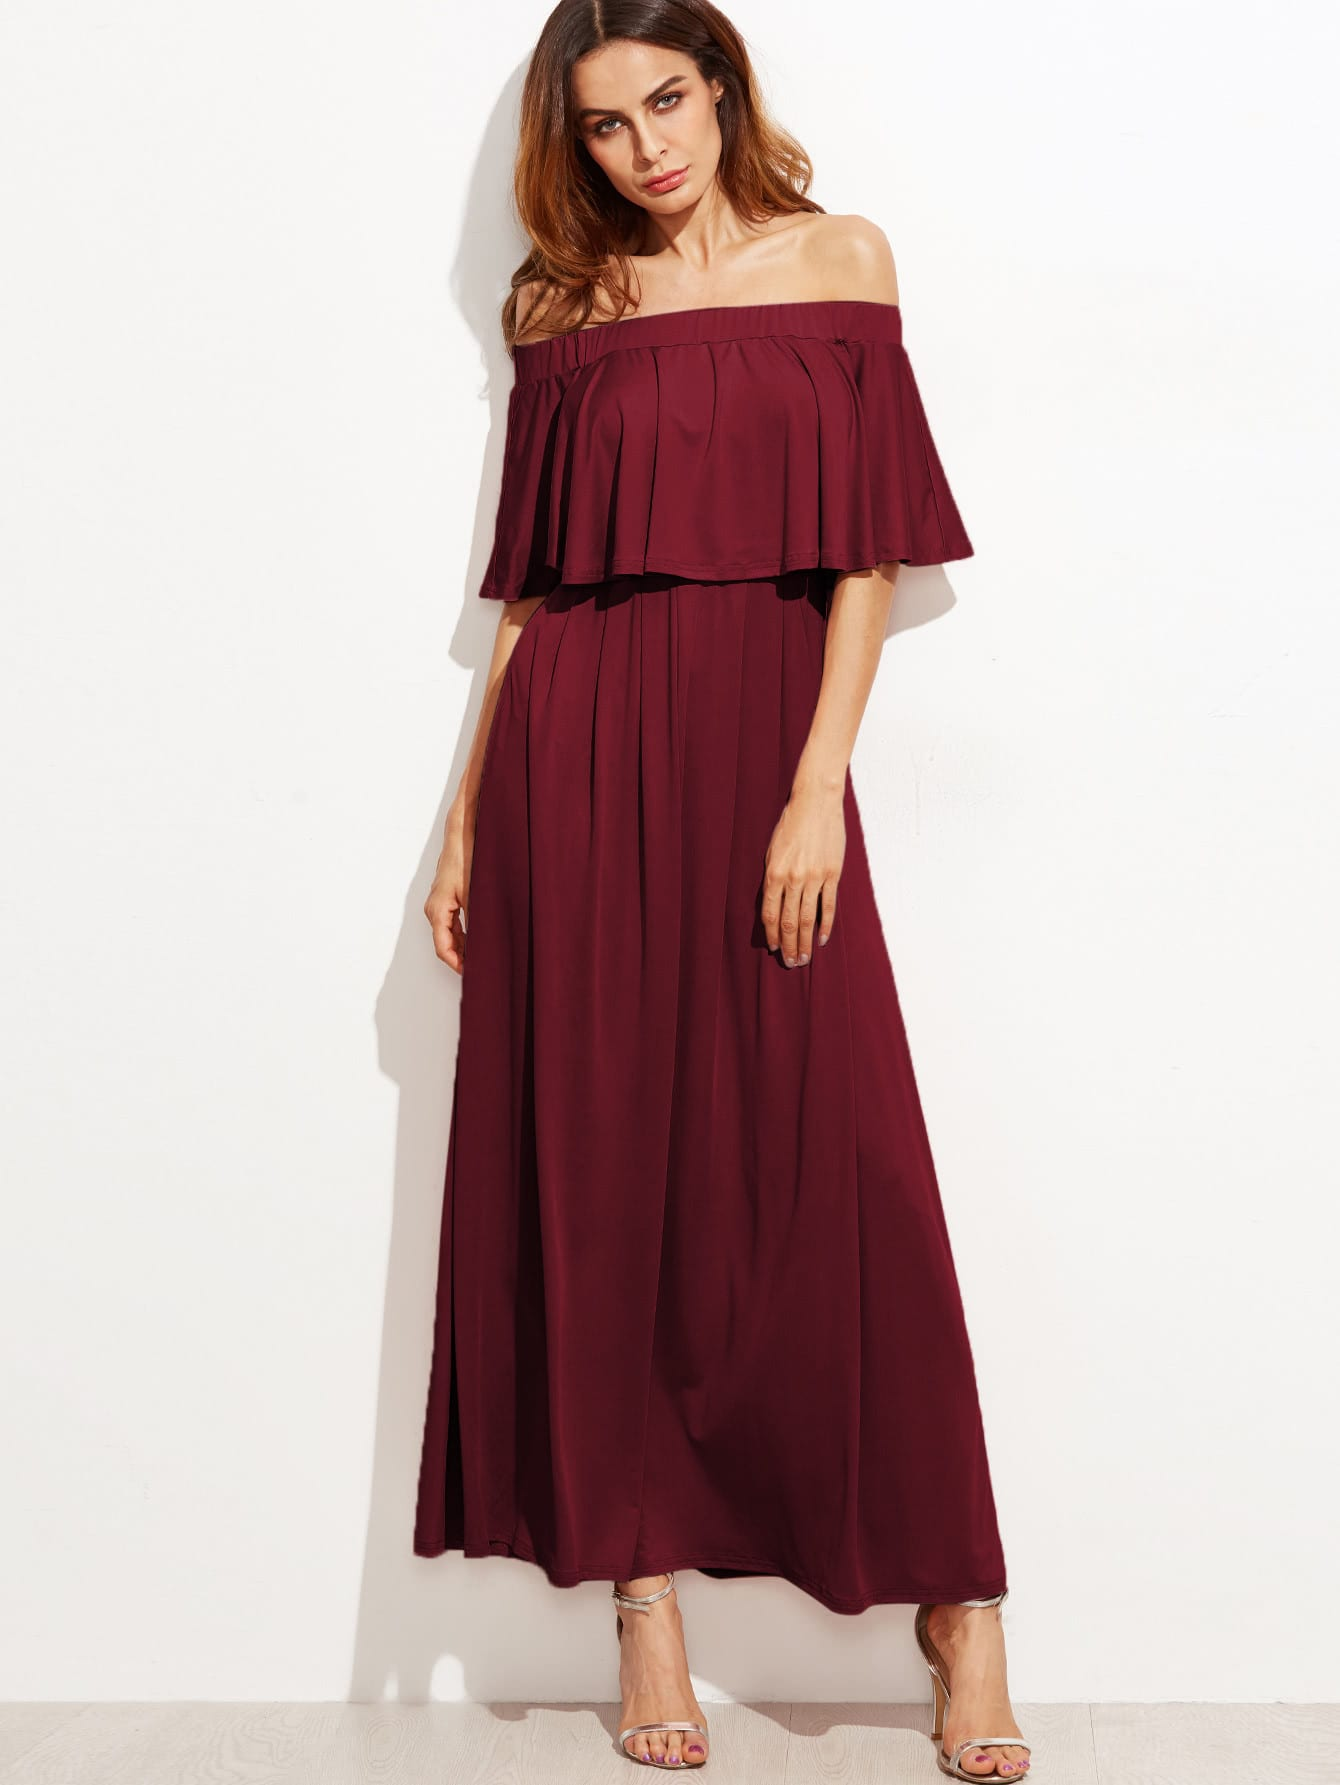 Double Layer Bardot Dress flytop 3 4persond double layer 2use